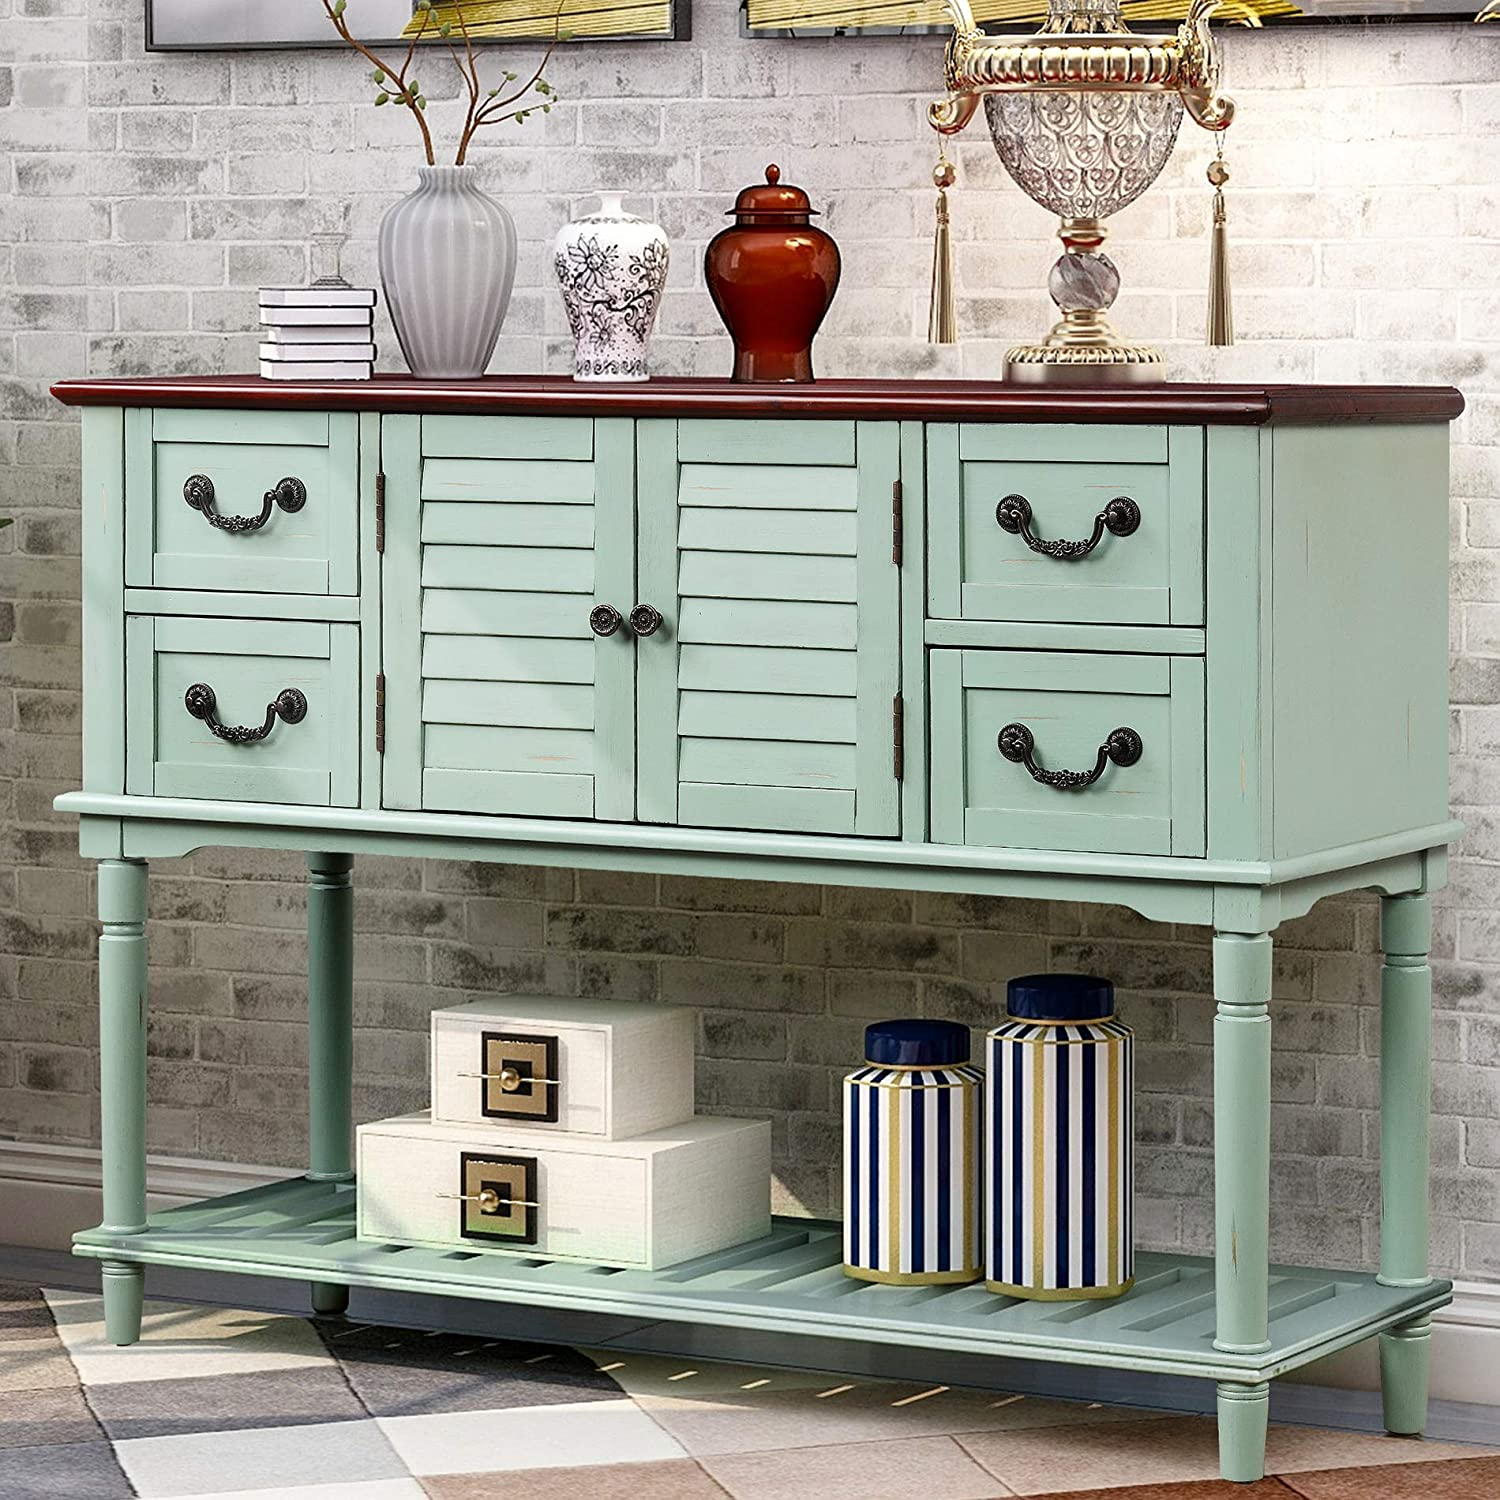 Merax Buffet Sideboard Console, Console Table With Storage Bins